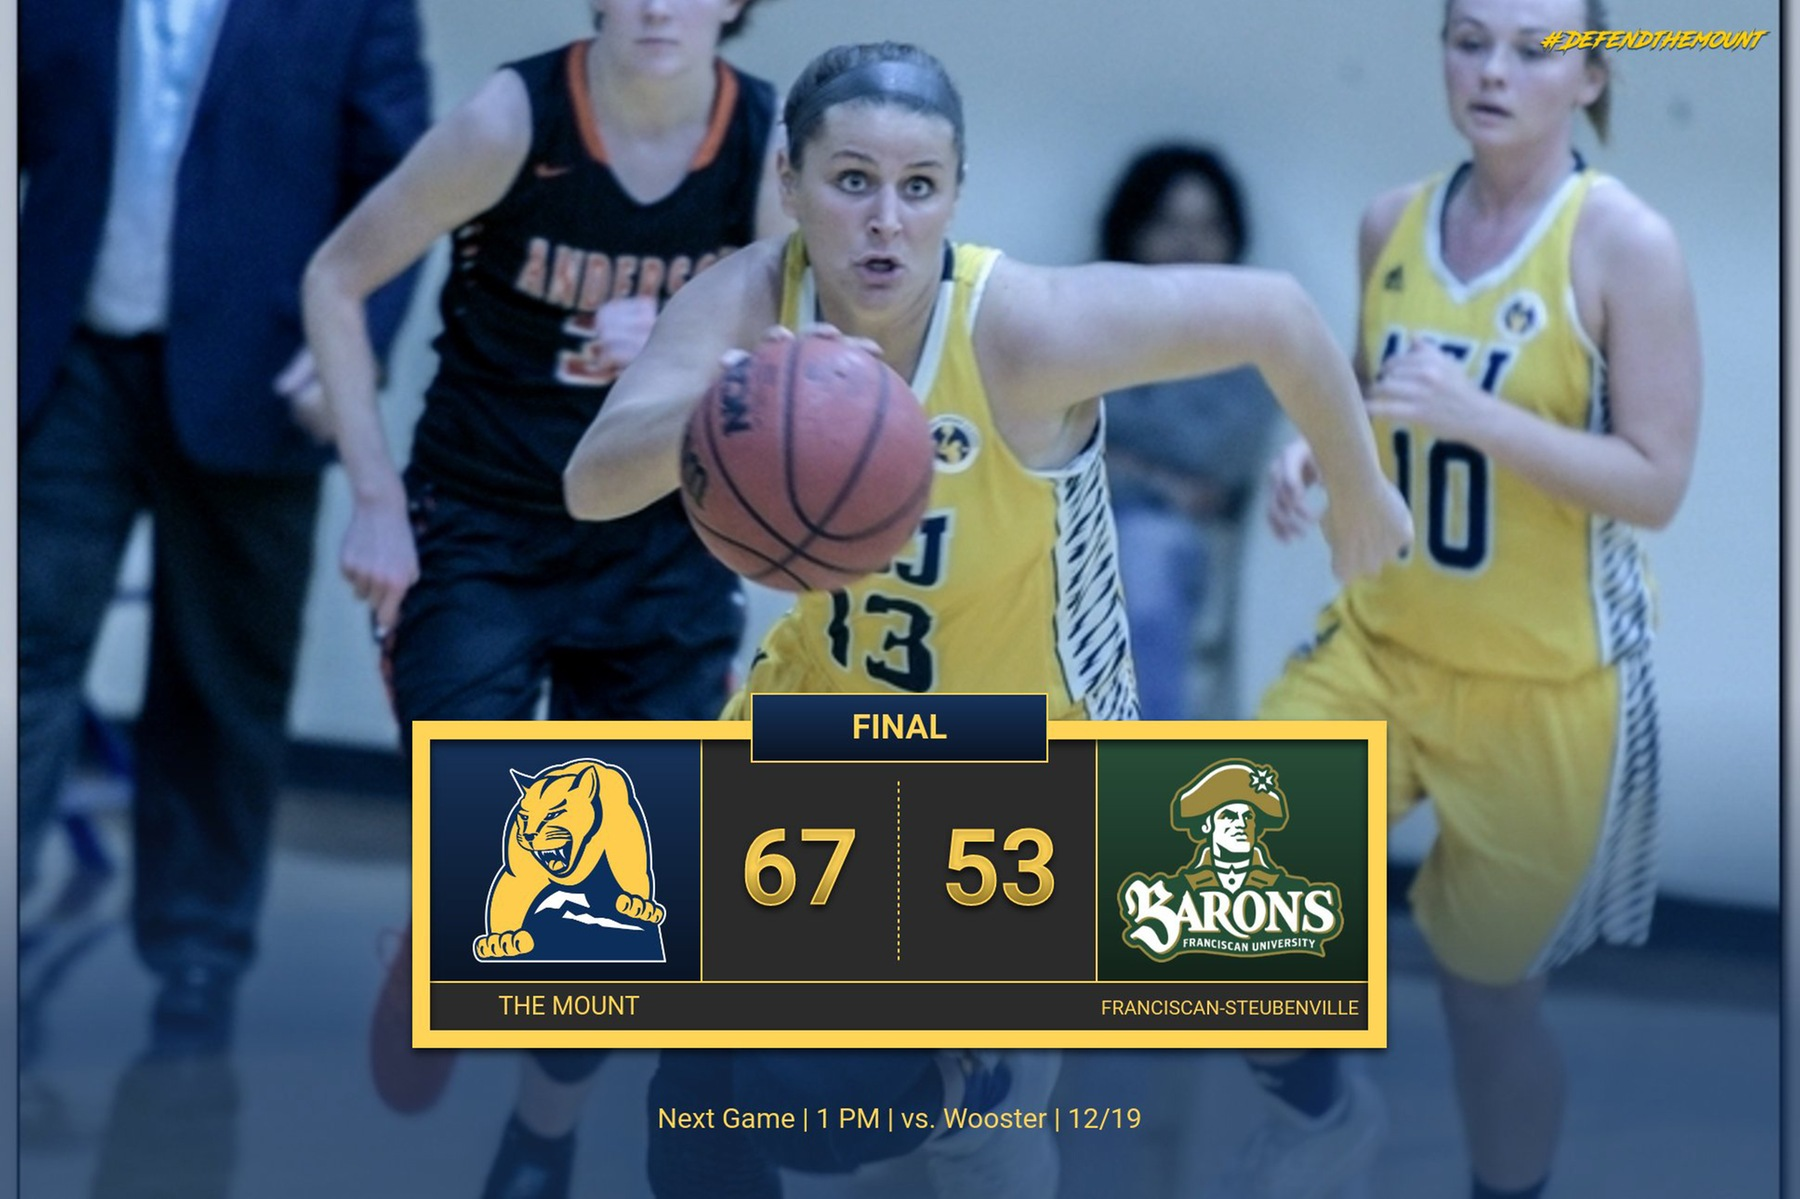 Huge second quarter leads Lions to 67-53 victory over Franciscan